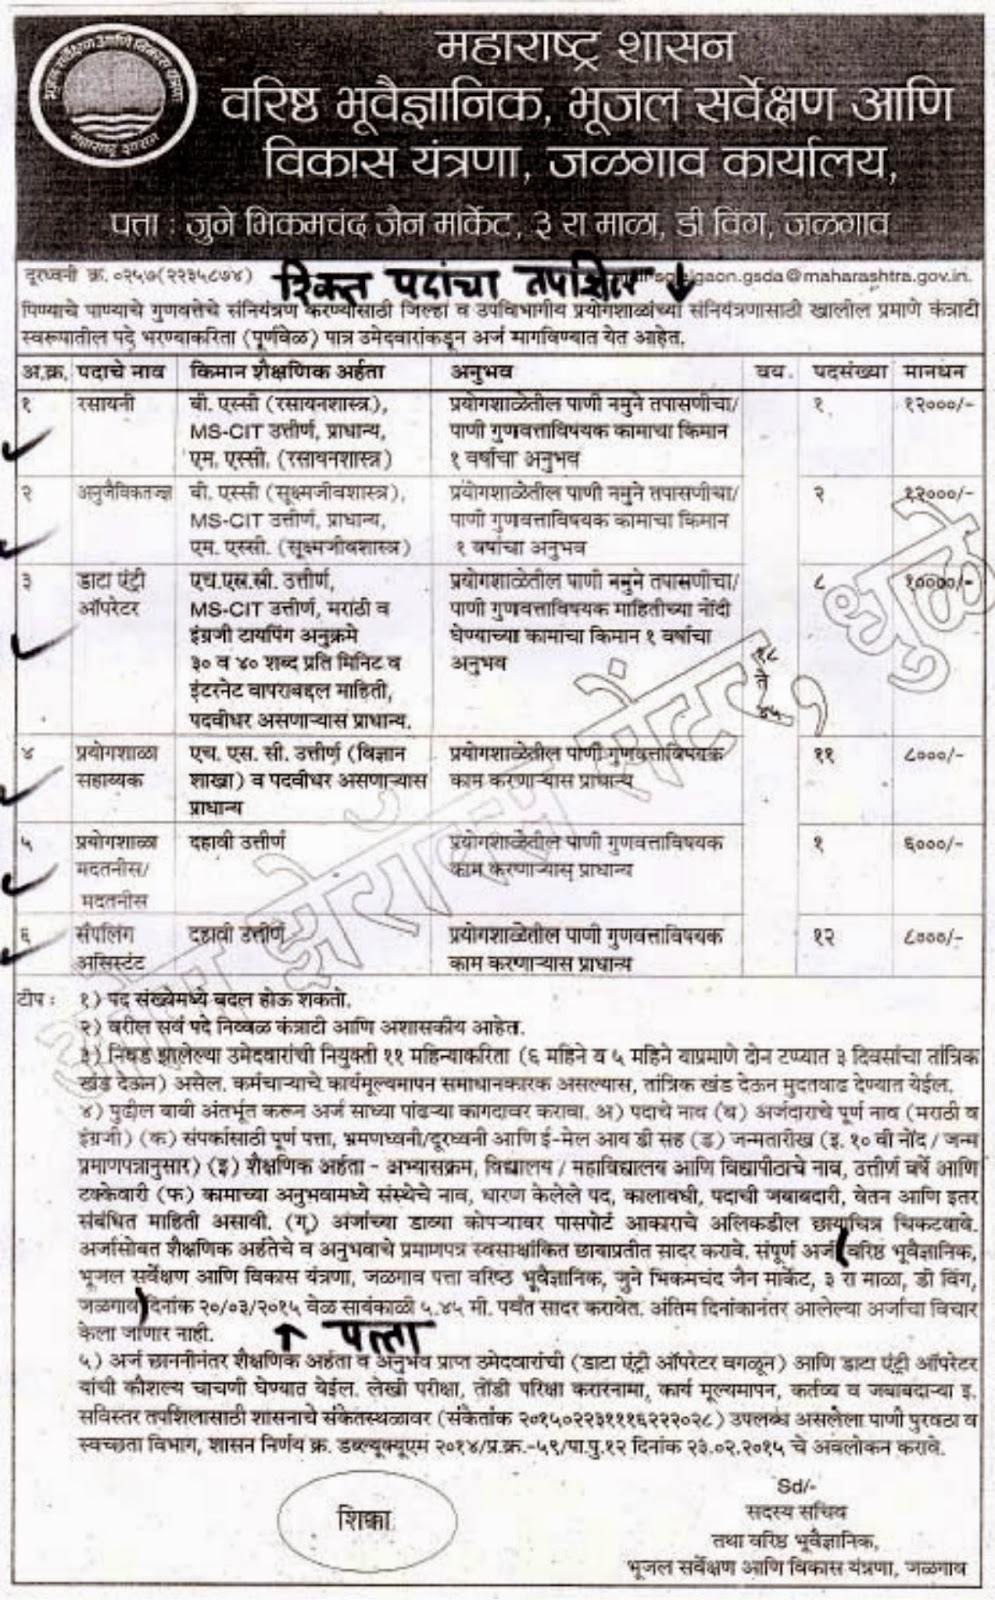 Jalgaon Ground Water Board Recruitment 2015